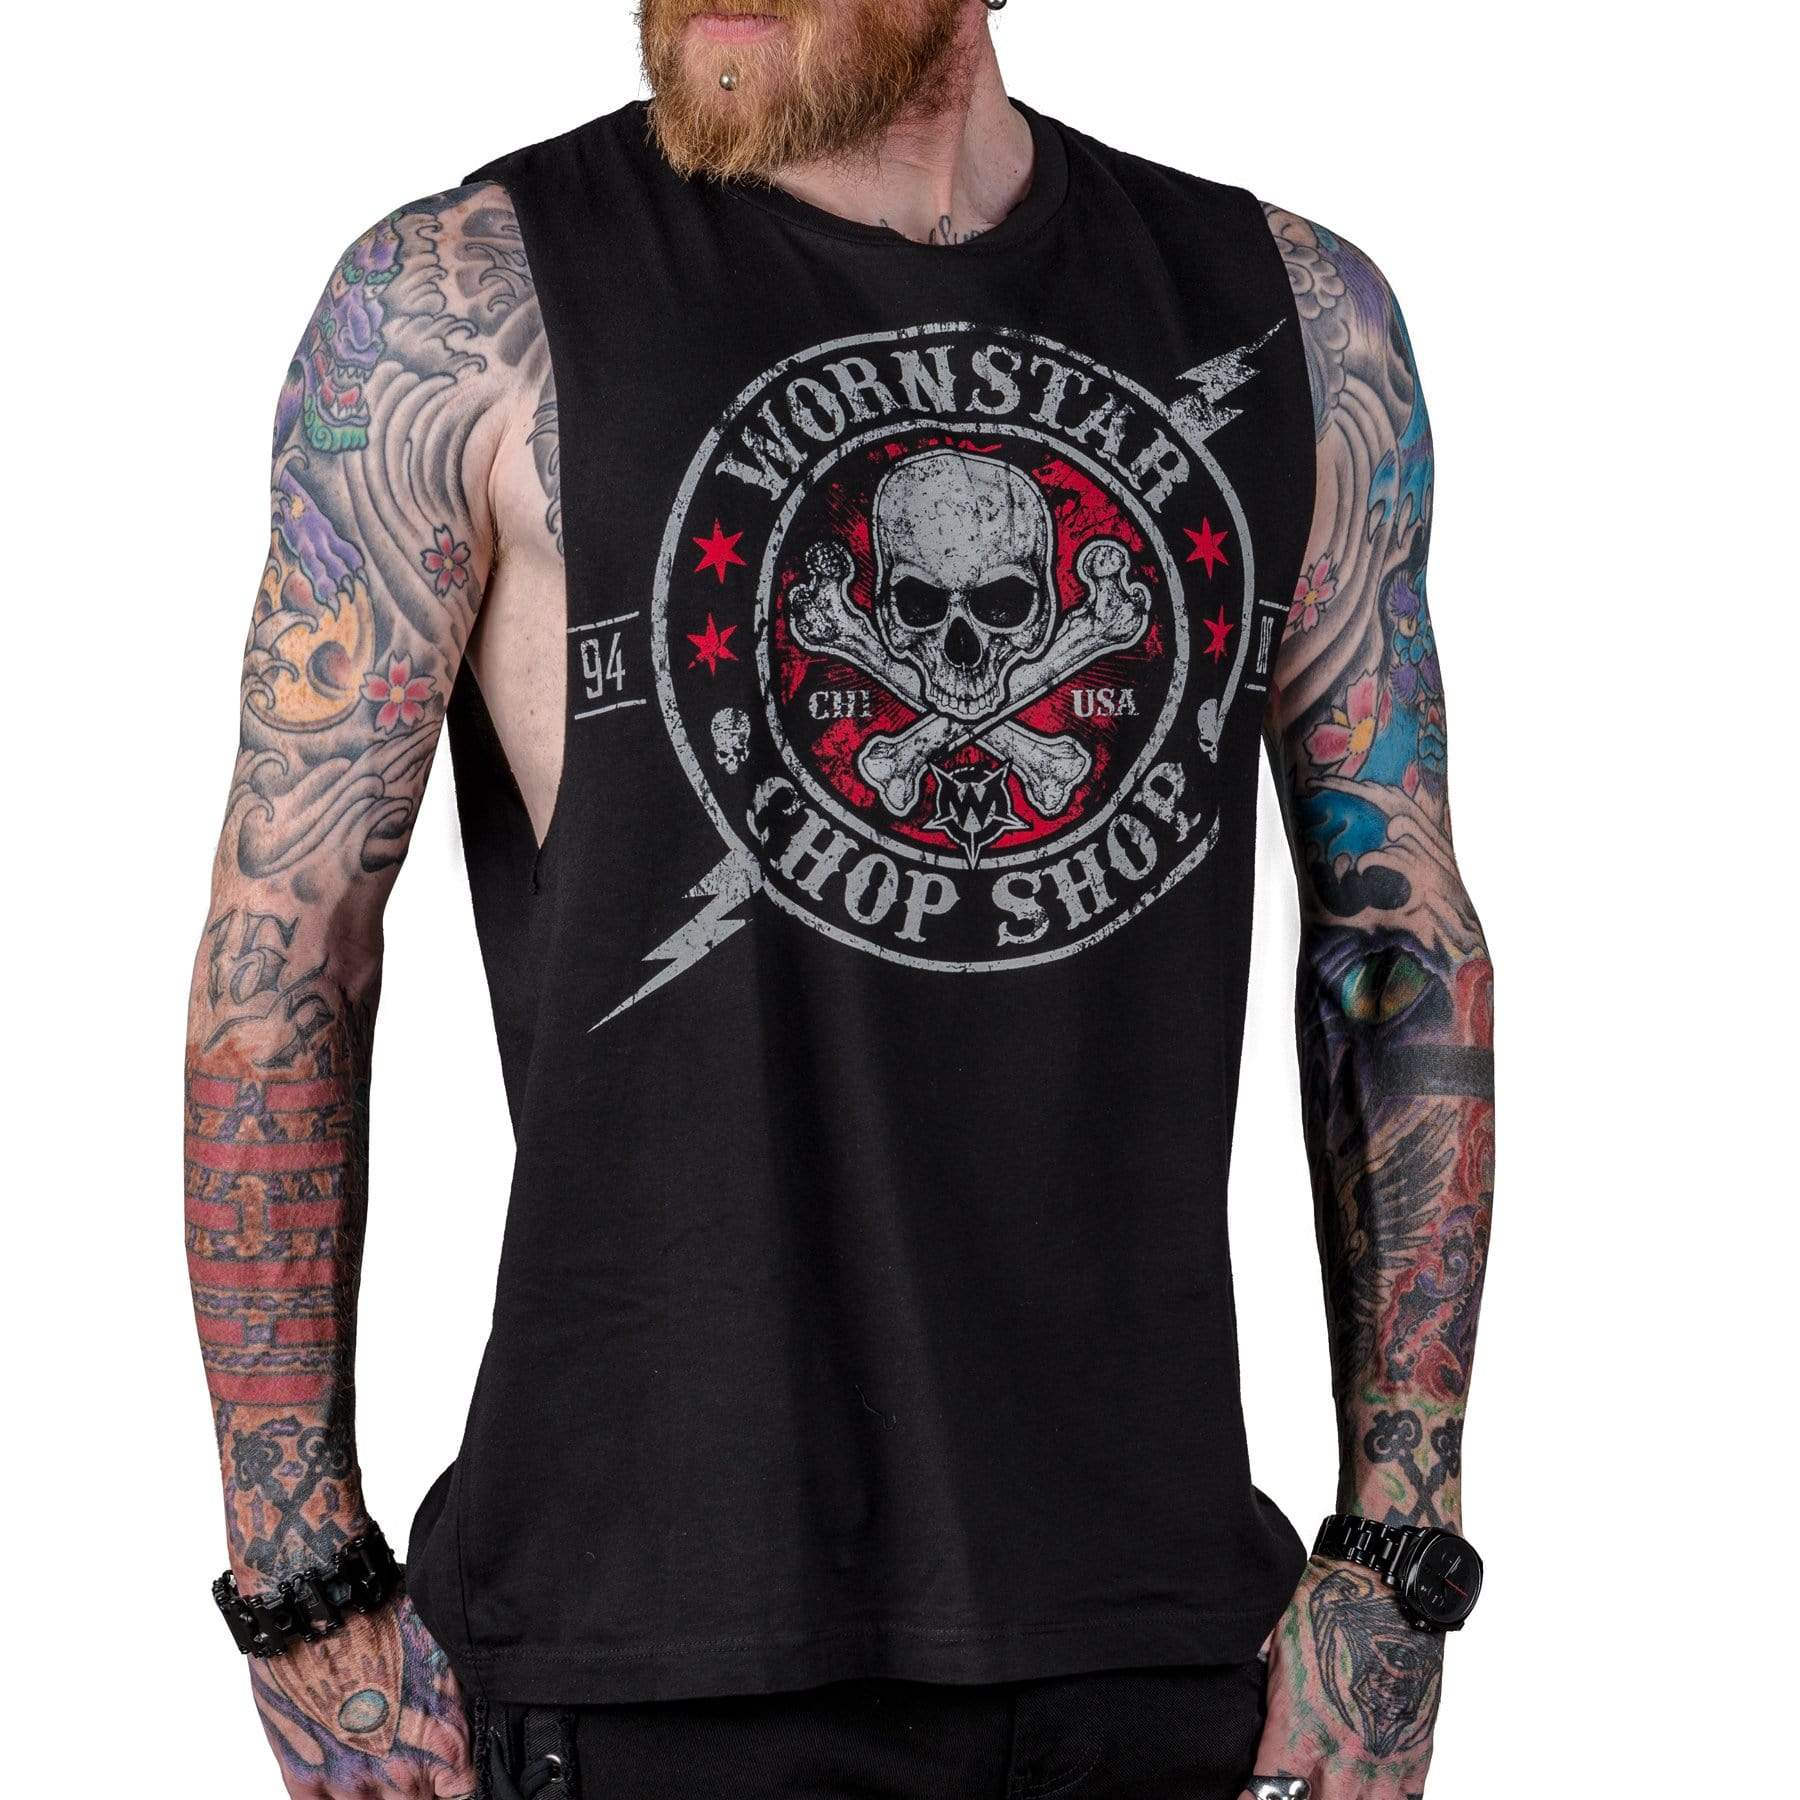 Wornstar Clothing Electric custom cut tee with printed skull graphic.